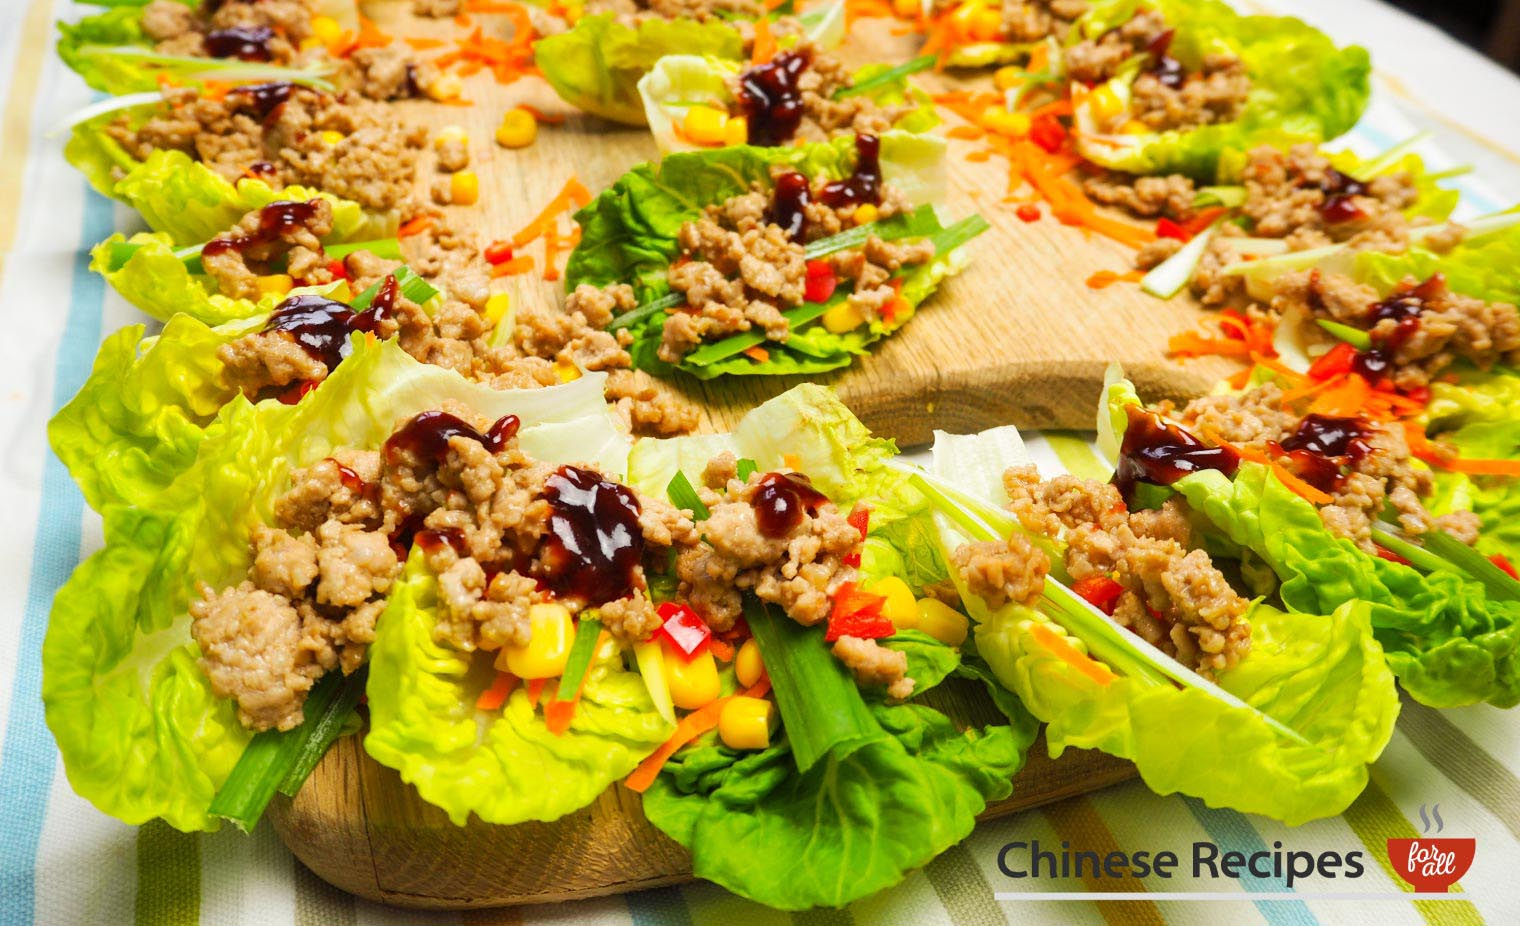 Minced Pork Lettuce Parcels with Hoi Sin Sauce - Chinese Recipes For All